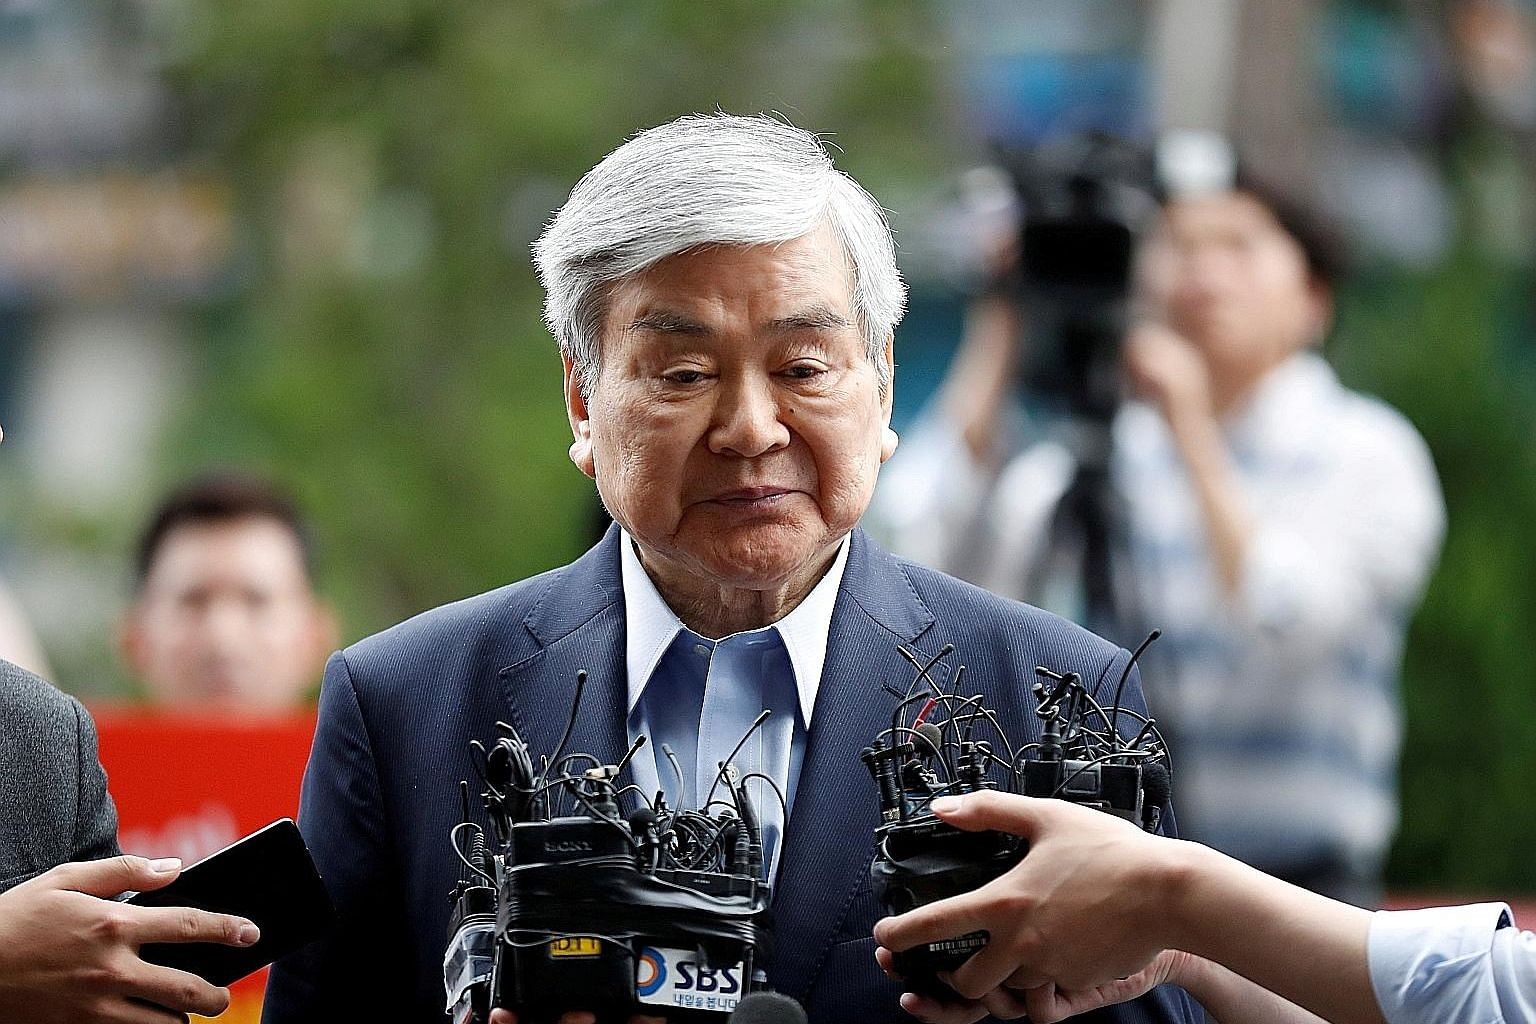 Korean Air chairman and chief executive Cho Yang-ho arriving at a prosecutor's office in Seoul in June last year. The late Mr Cho, who was indicted last year on charges of embezzlement and breach of trust, denied the charges.